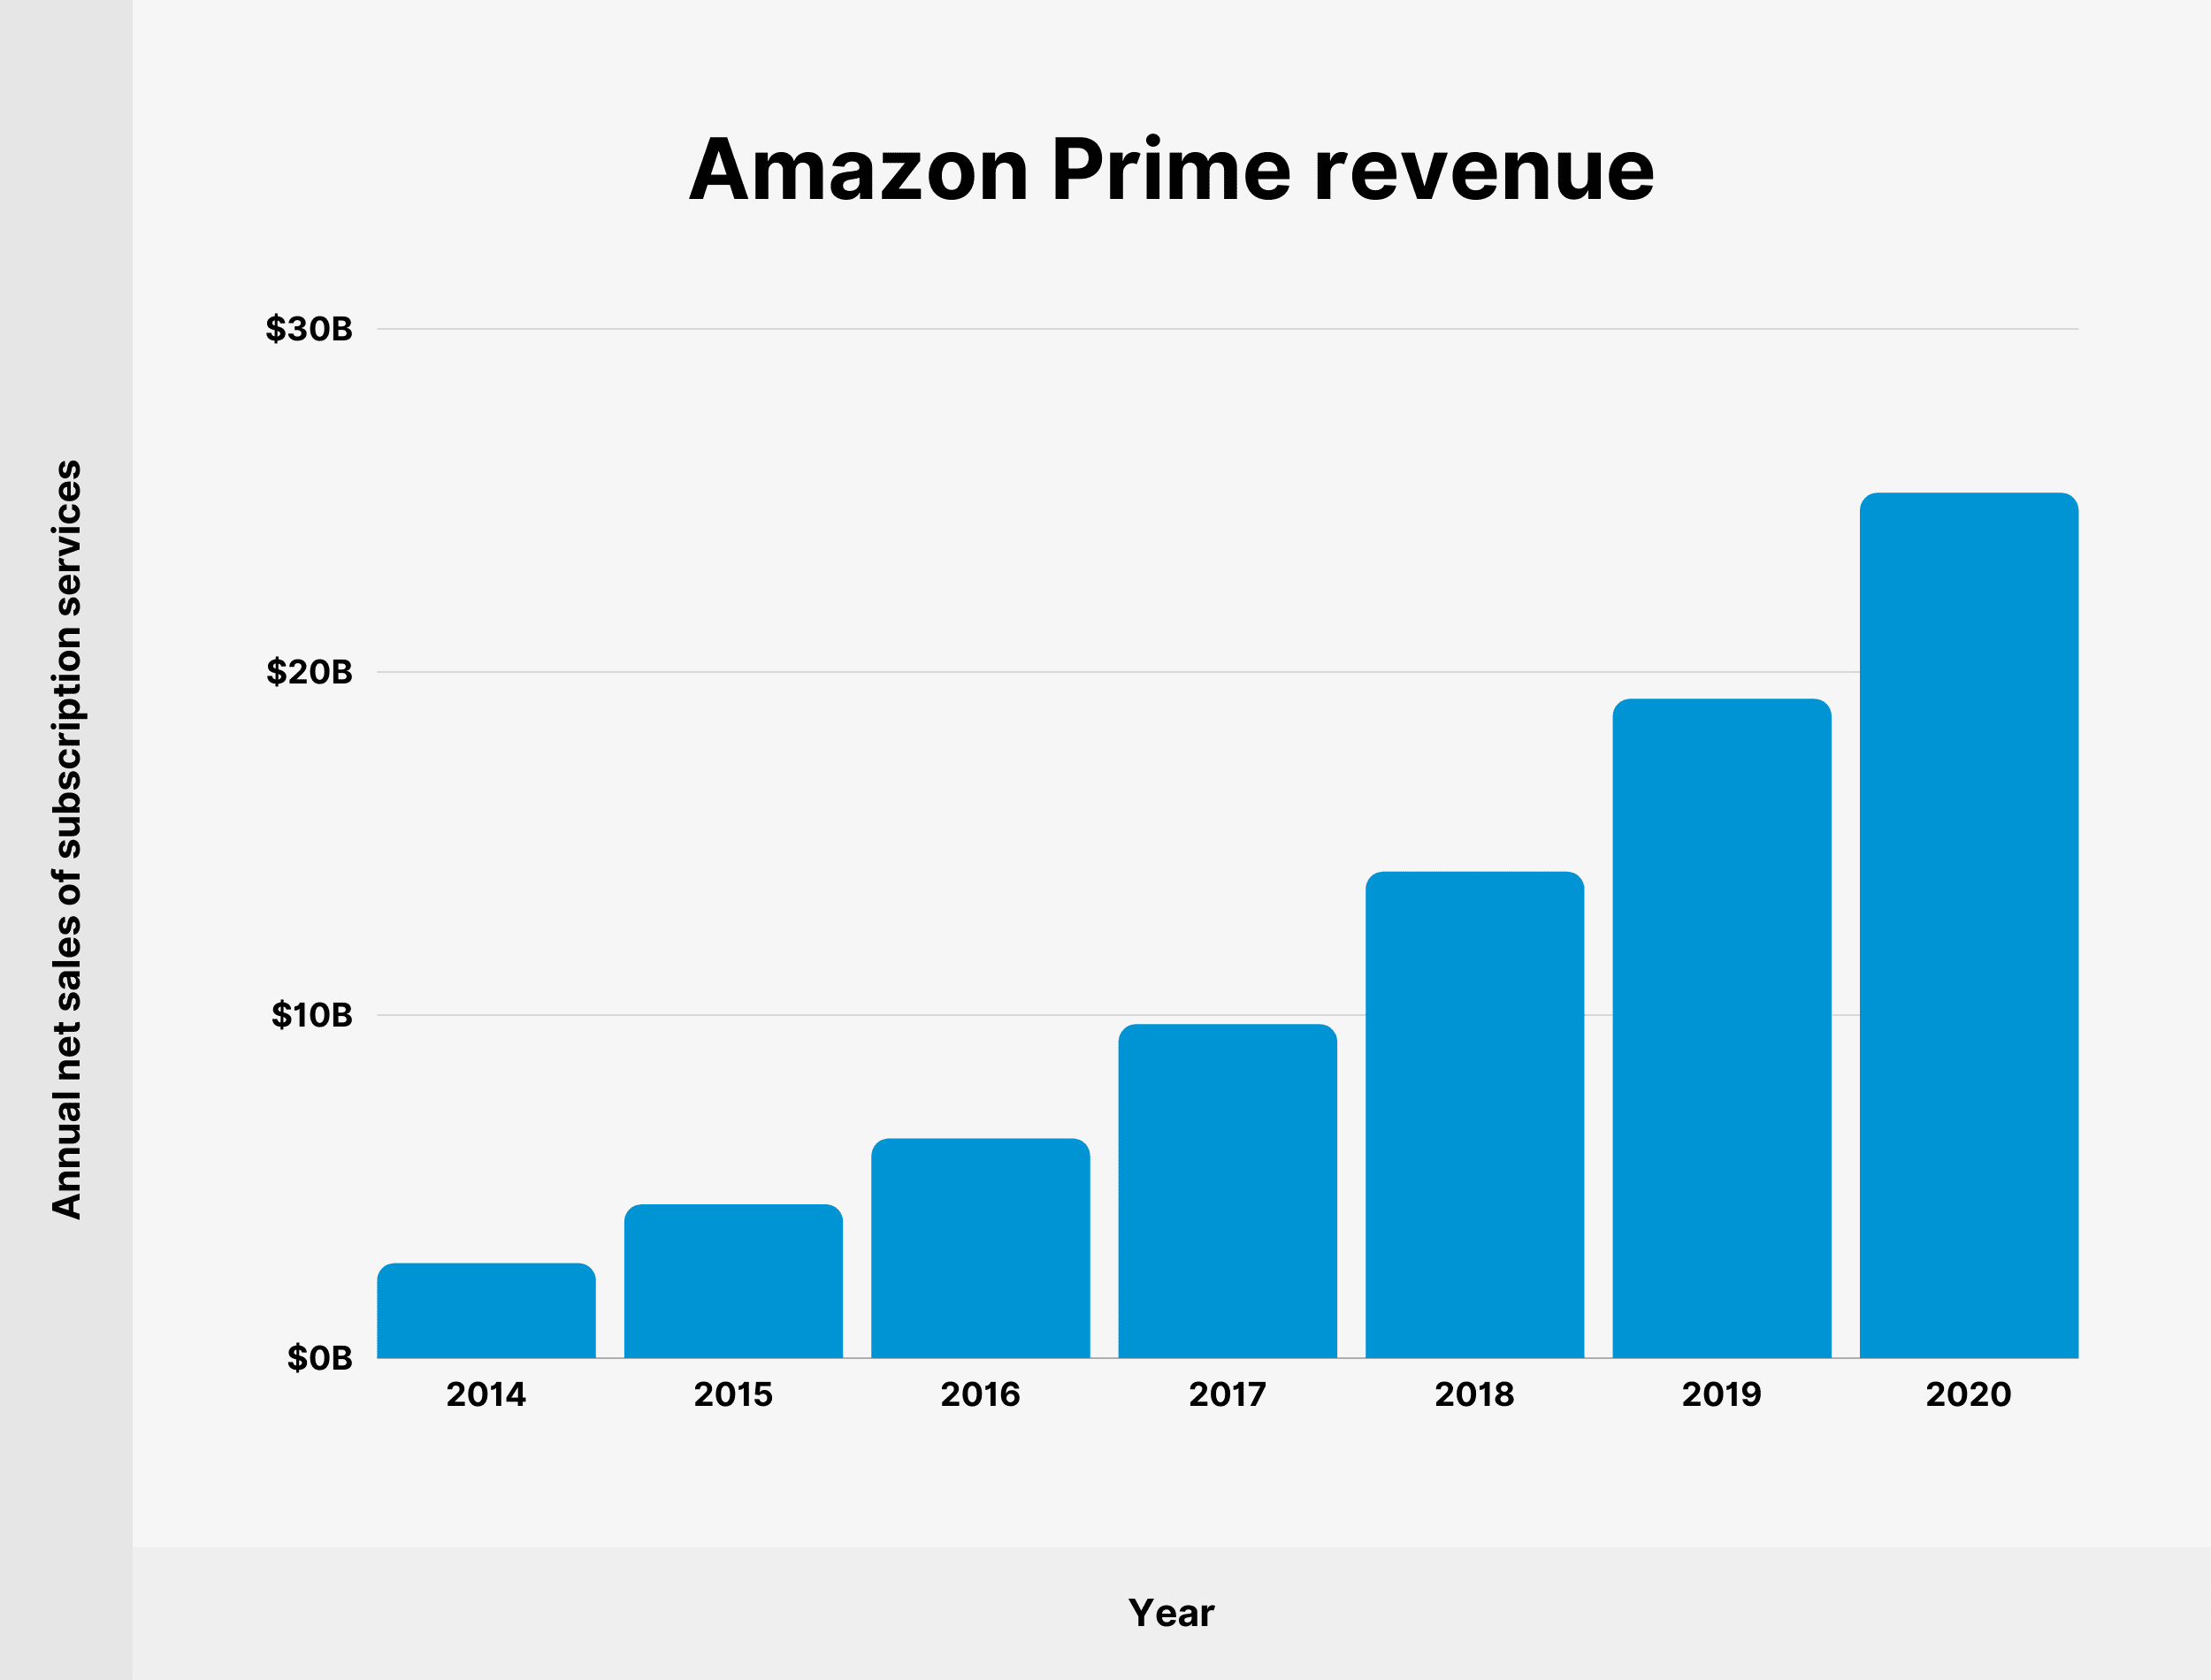 Amazon Prime revenue